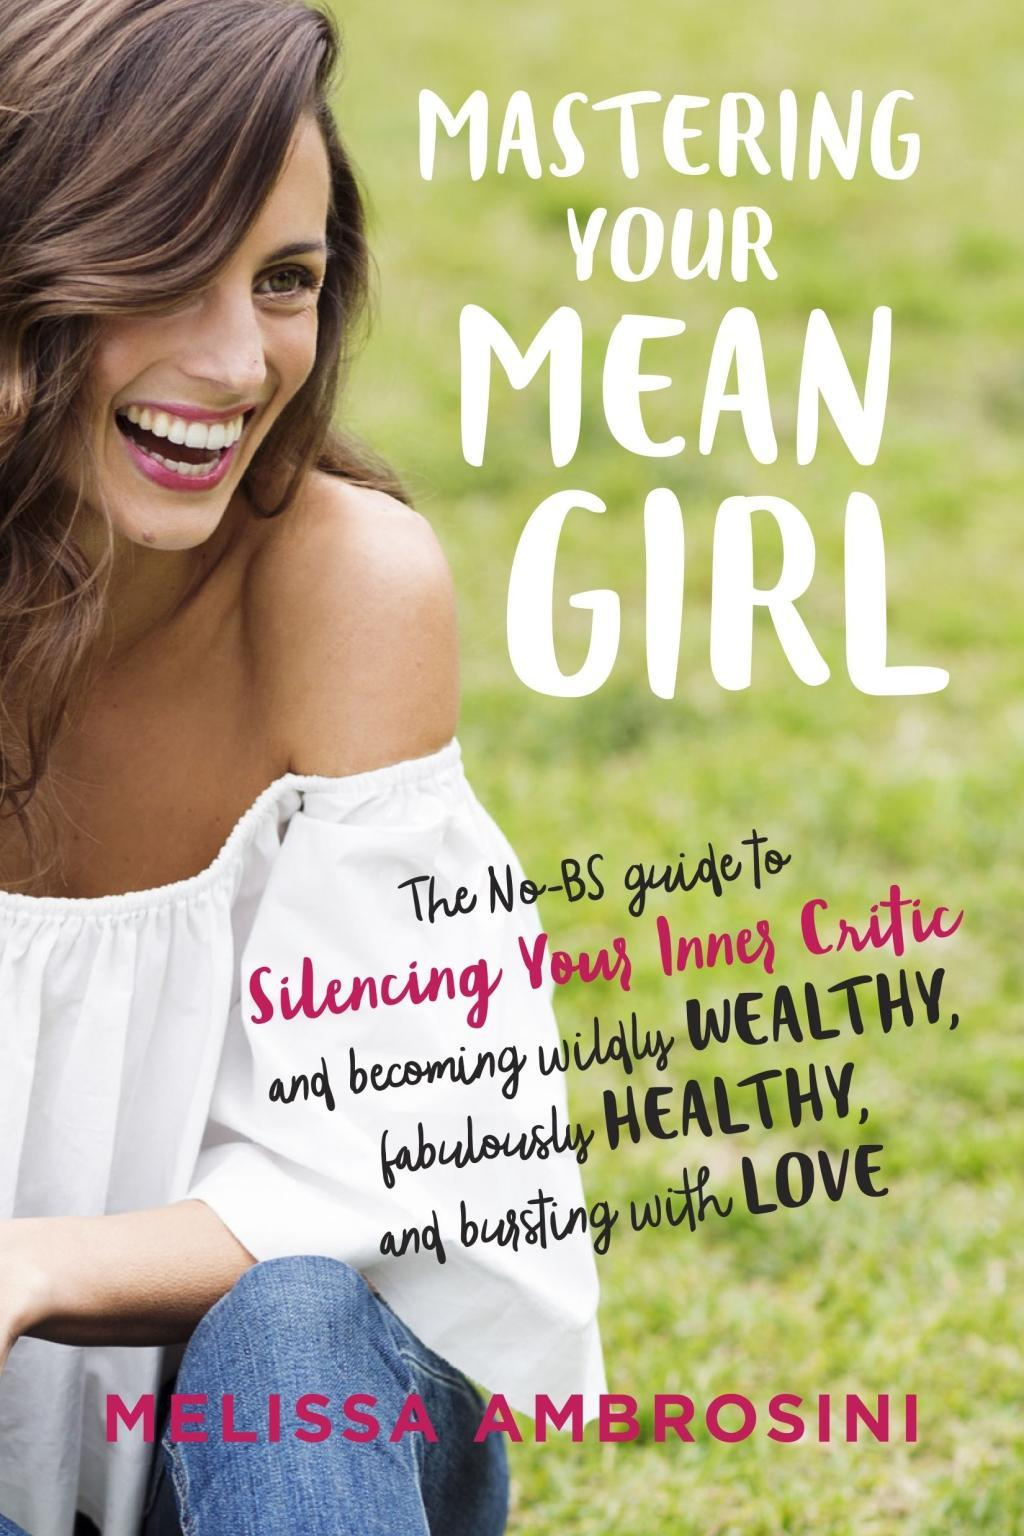 Mastering Your Inner Mean Girl: The No-BS Guide to Becoming Wildly Wealthy, Fabulously Healthy and Bursting with Love by Melissa Ambrosini, ISBN: 9780399176715